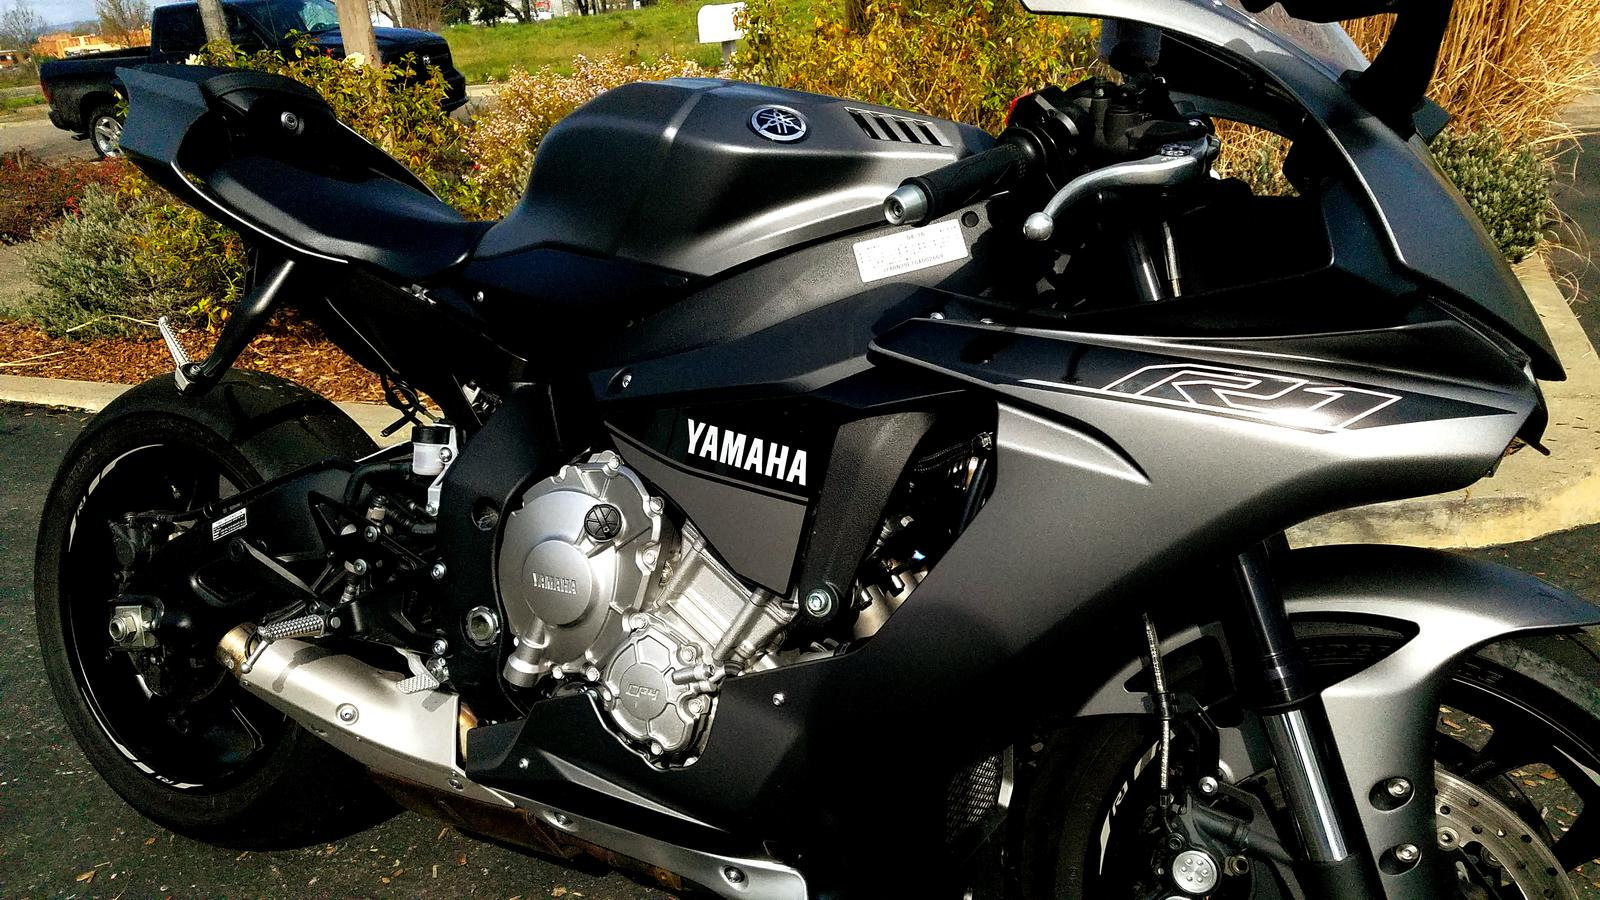 2016 yamaha yzf r1 for sale in windsor ca euro cycle sonoma 20180308110610 publicscrutiny Images